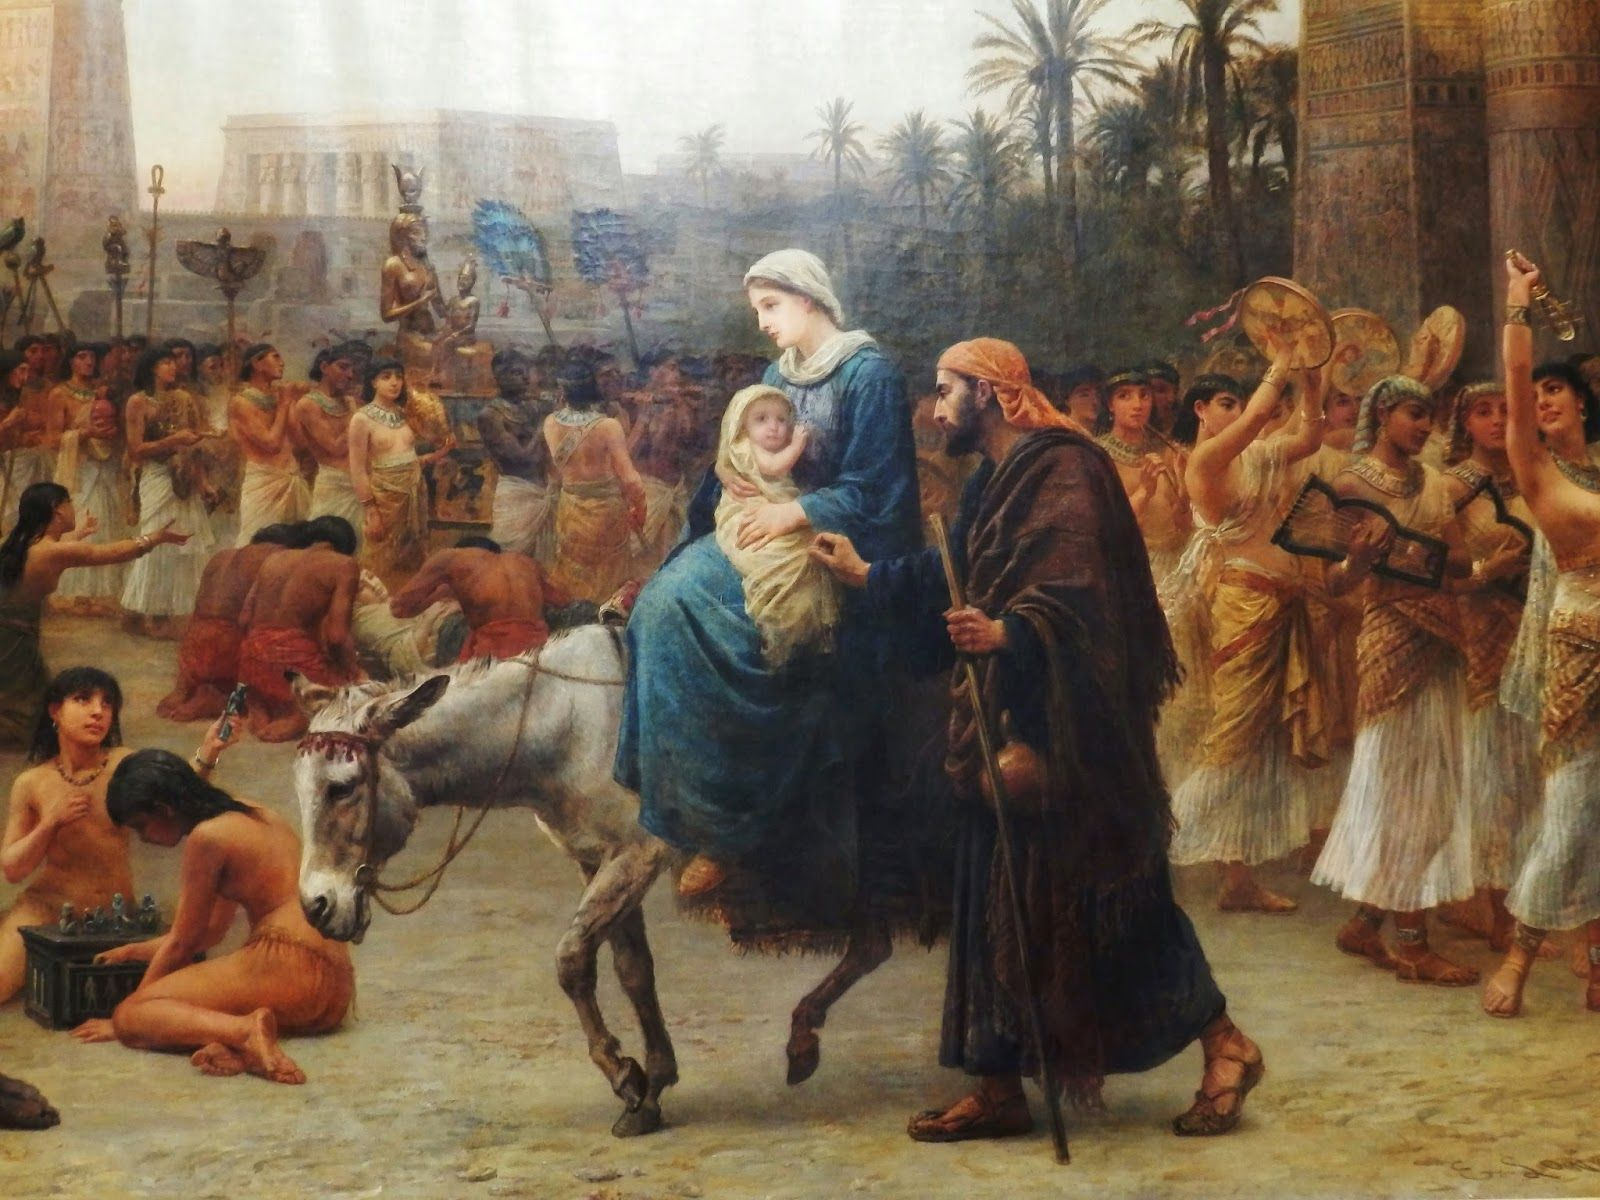 The painting Anno Domini (also known as The Flight To Egypt.) by Edwin Long